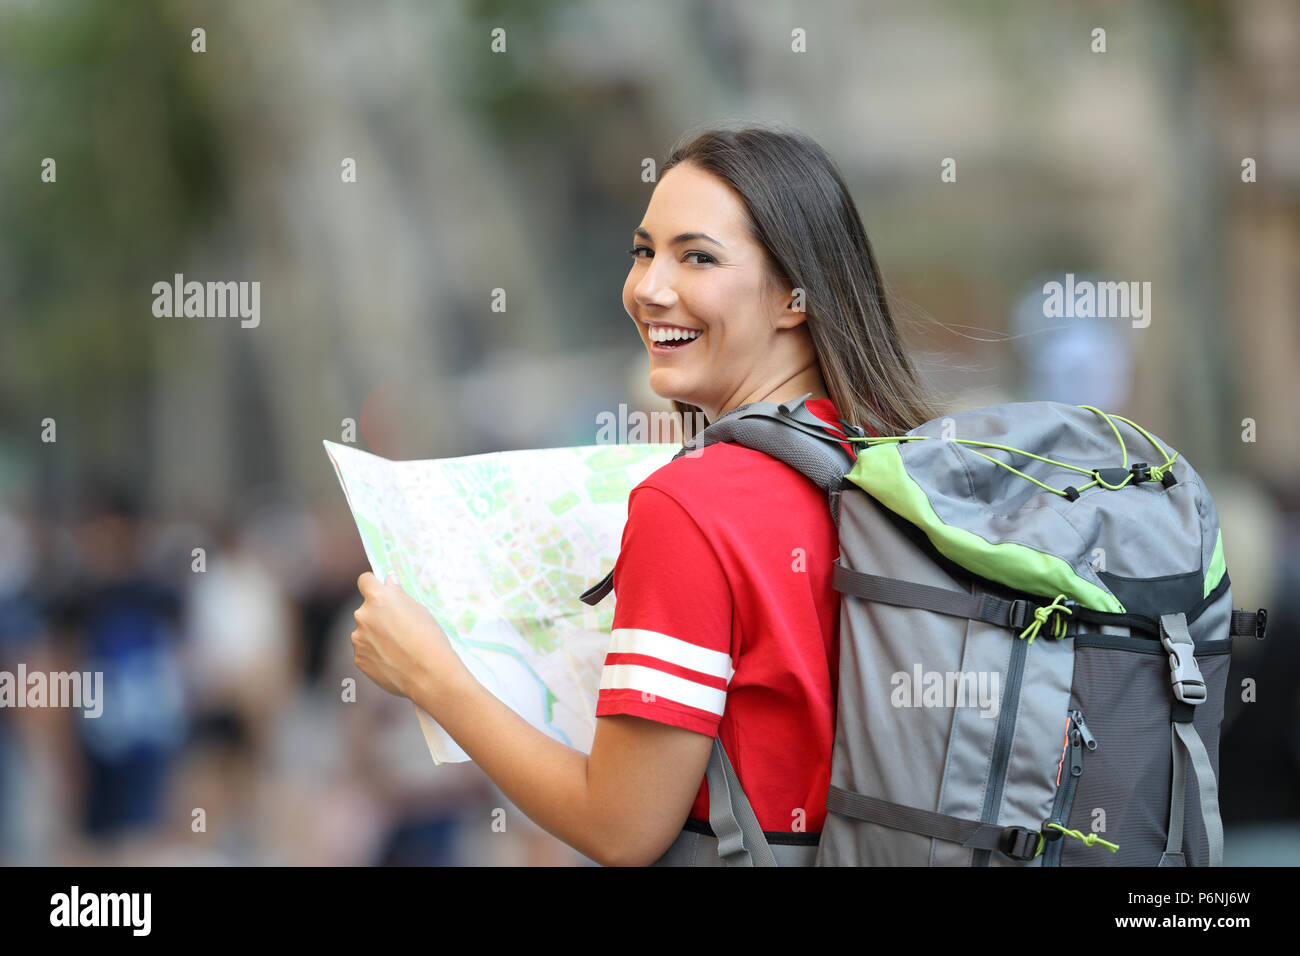 Happy teen tourist holding a paper guide and looking at camera on the street - Stock Image